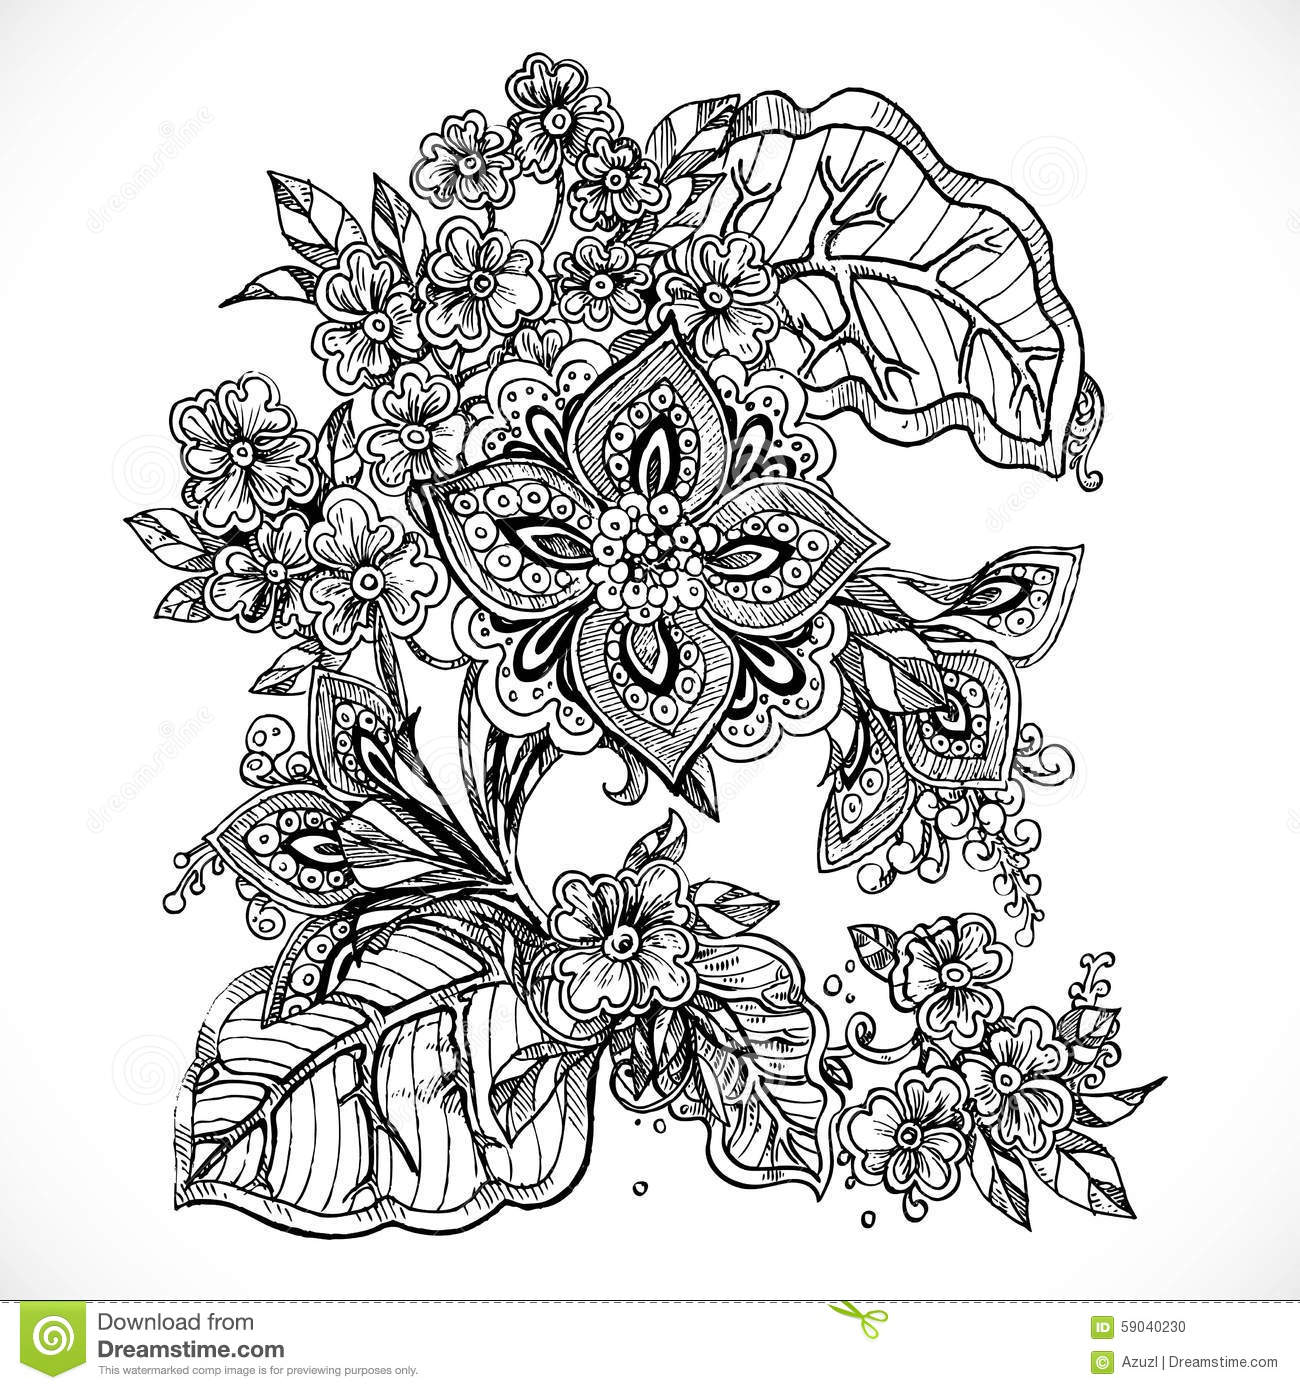 Fantasy flower drawings